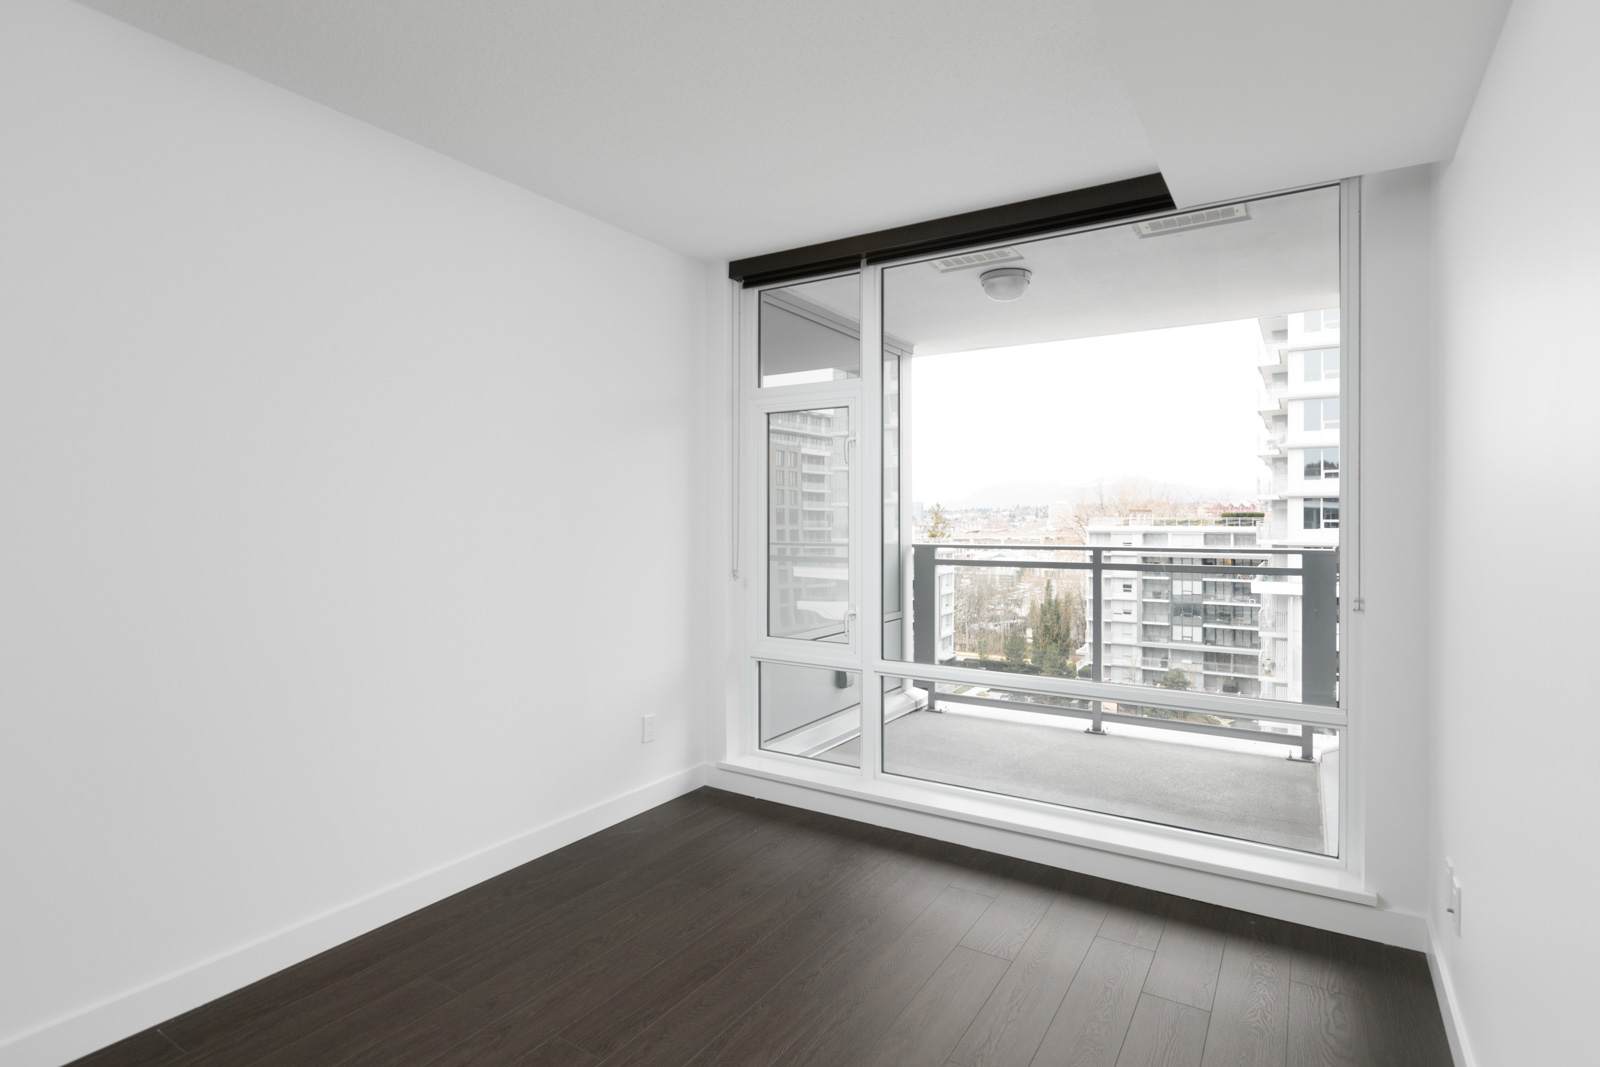 looking outside from bedroom of new empty rental condo in richmond with window on right and white wall on left